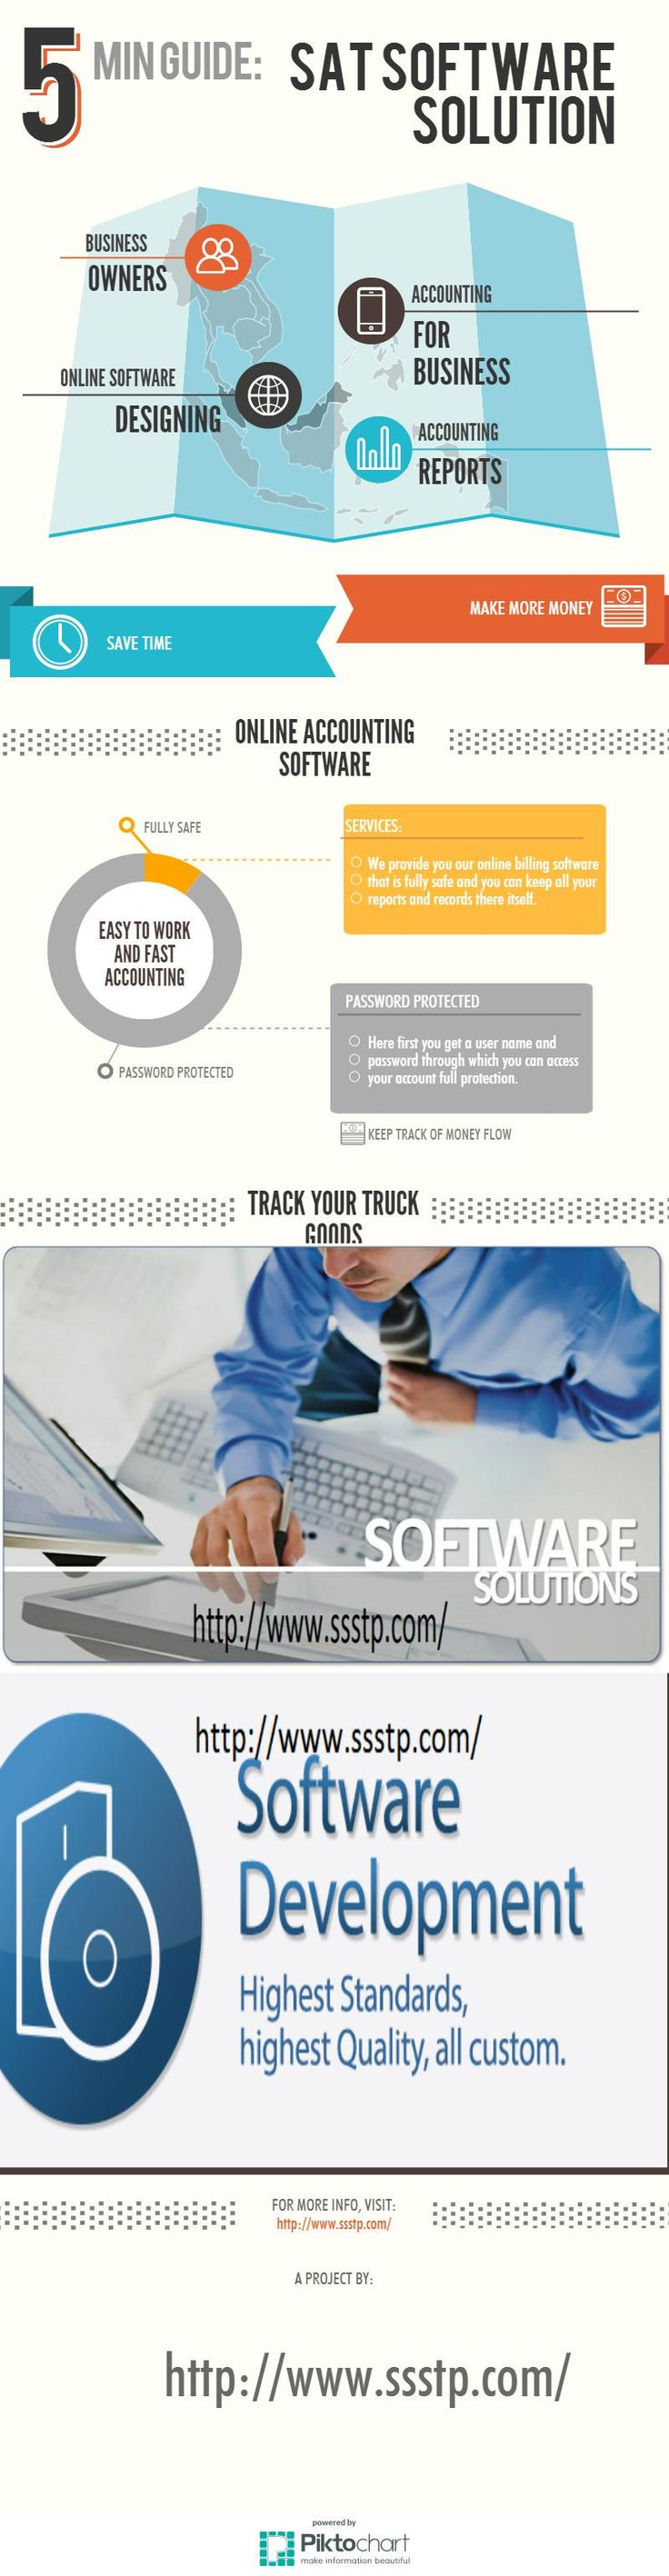 Command your work and all your branches you can do it get full benefits here use the best product in market online accounting software or transport software. You can manage all your branches here all accounting all money flow from sitting here by using our product.